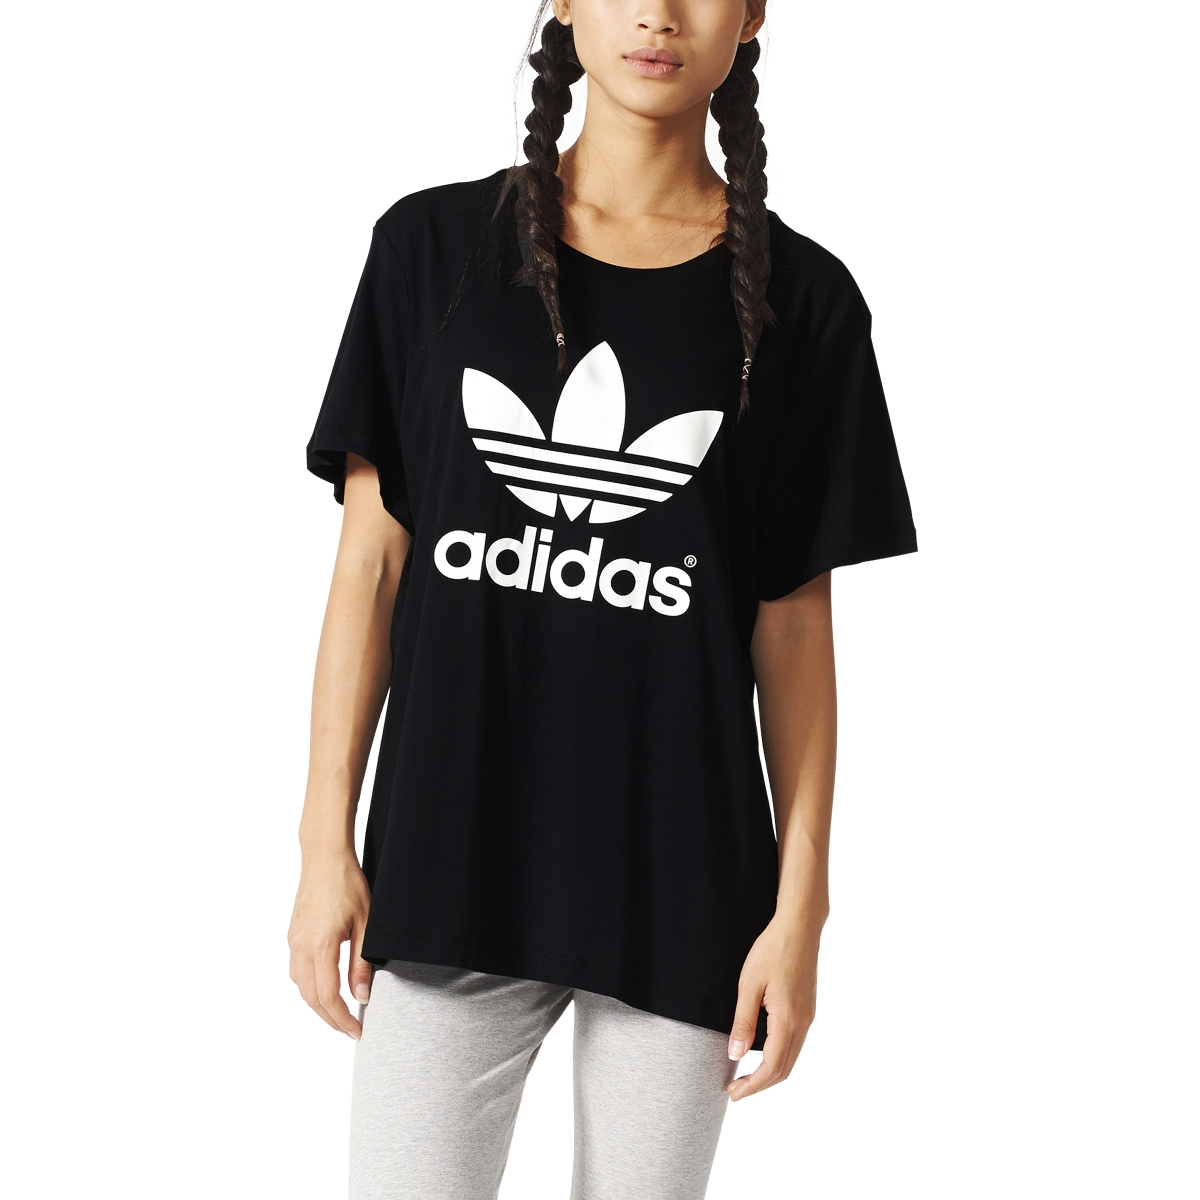 Adidas t shirt black white - Adidas Originals Boyfriend Trefoil Women S T Shirt Black White Aj8351